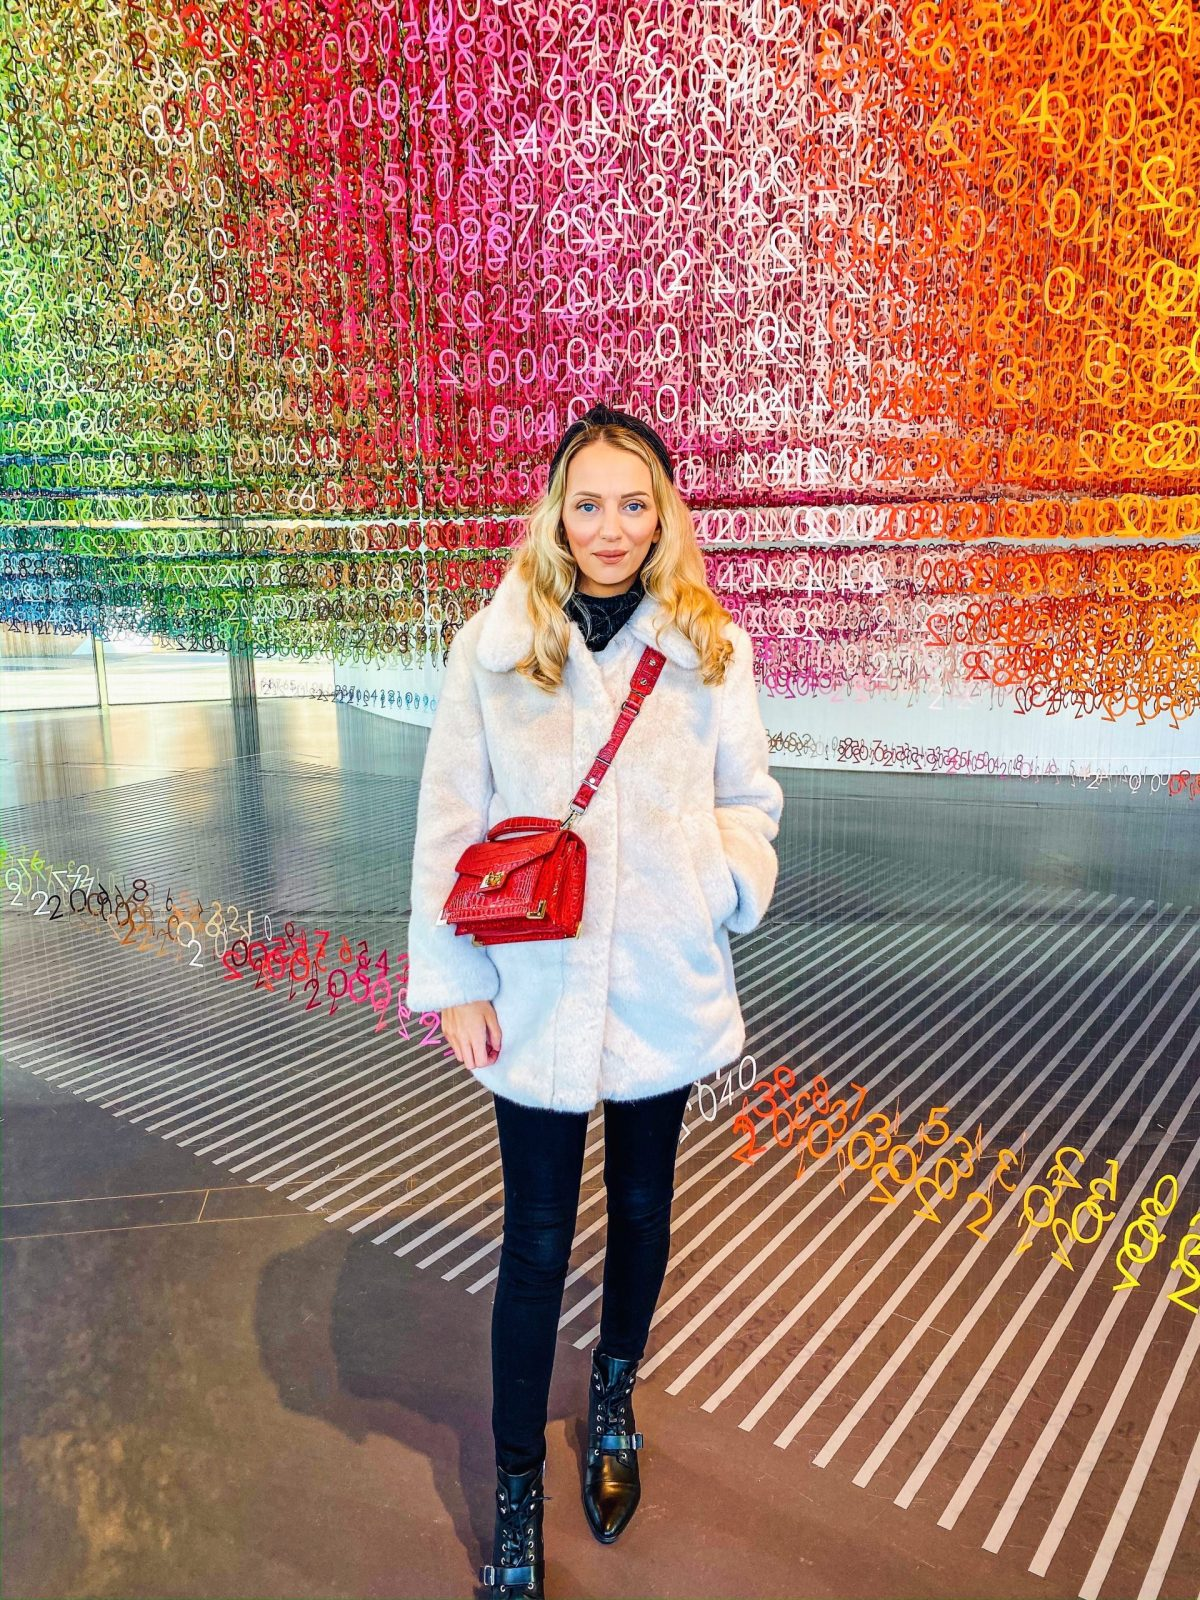 Slices of Time Emmanuelle Moureaux Now Gallery London - Things To Greenwich | The LDN Diaries